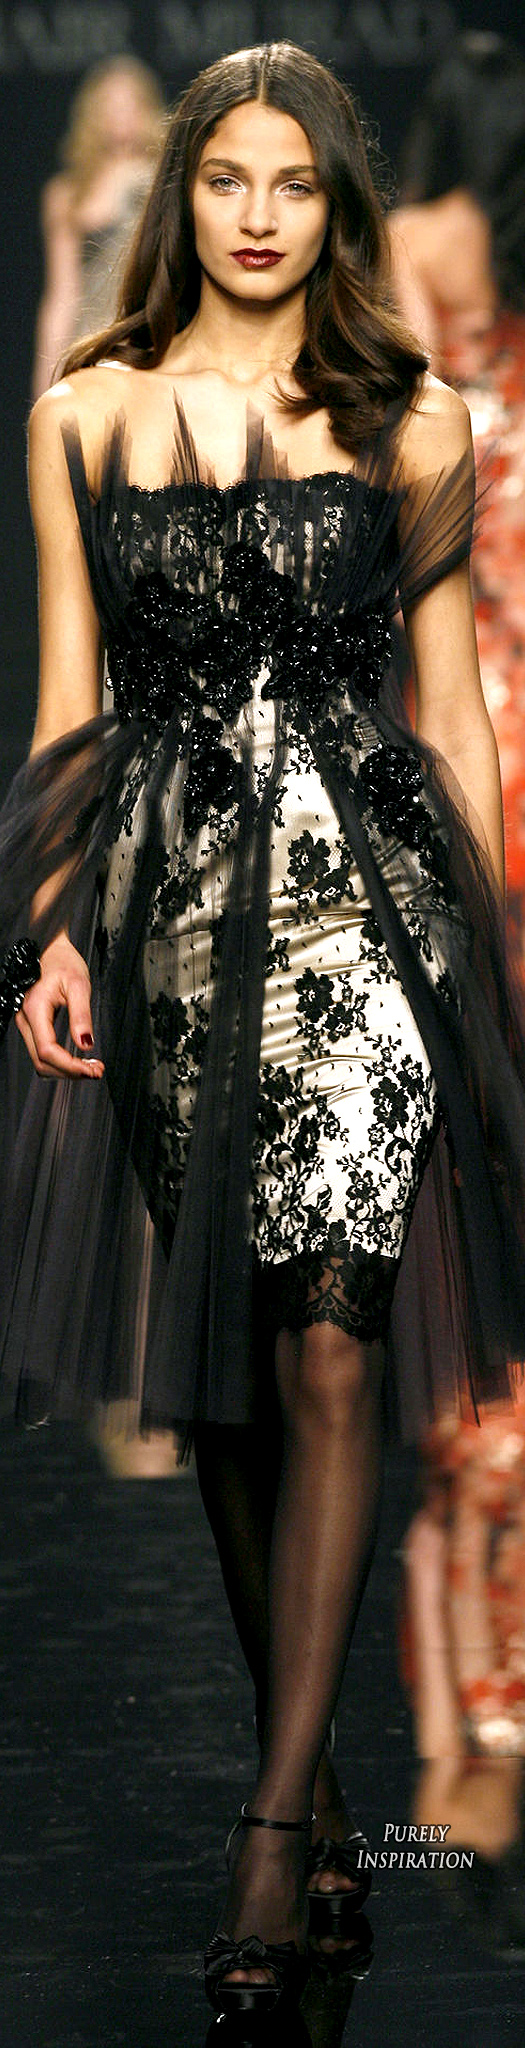 Zuhair murad fw womenus fashion rtw purely inspiration fab